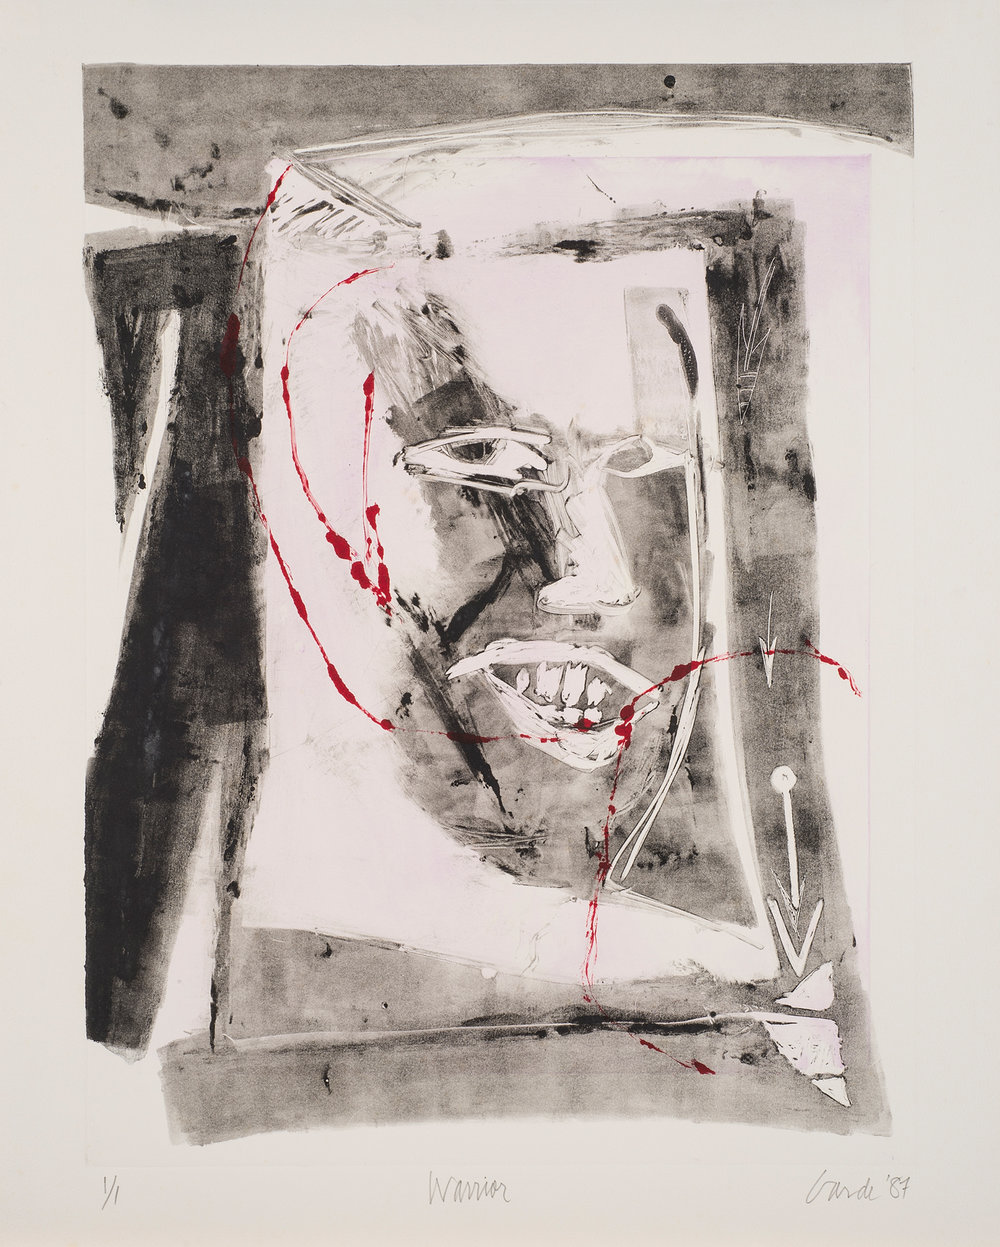 Warrior,  1987. Monotype on paper, 27 x 22 in. (68 x 56 cm.)